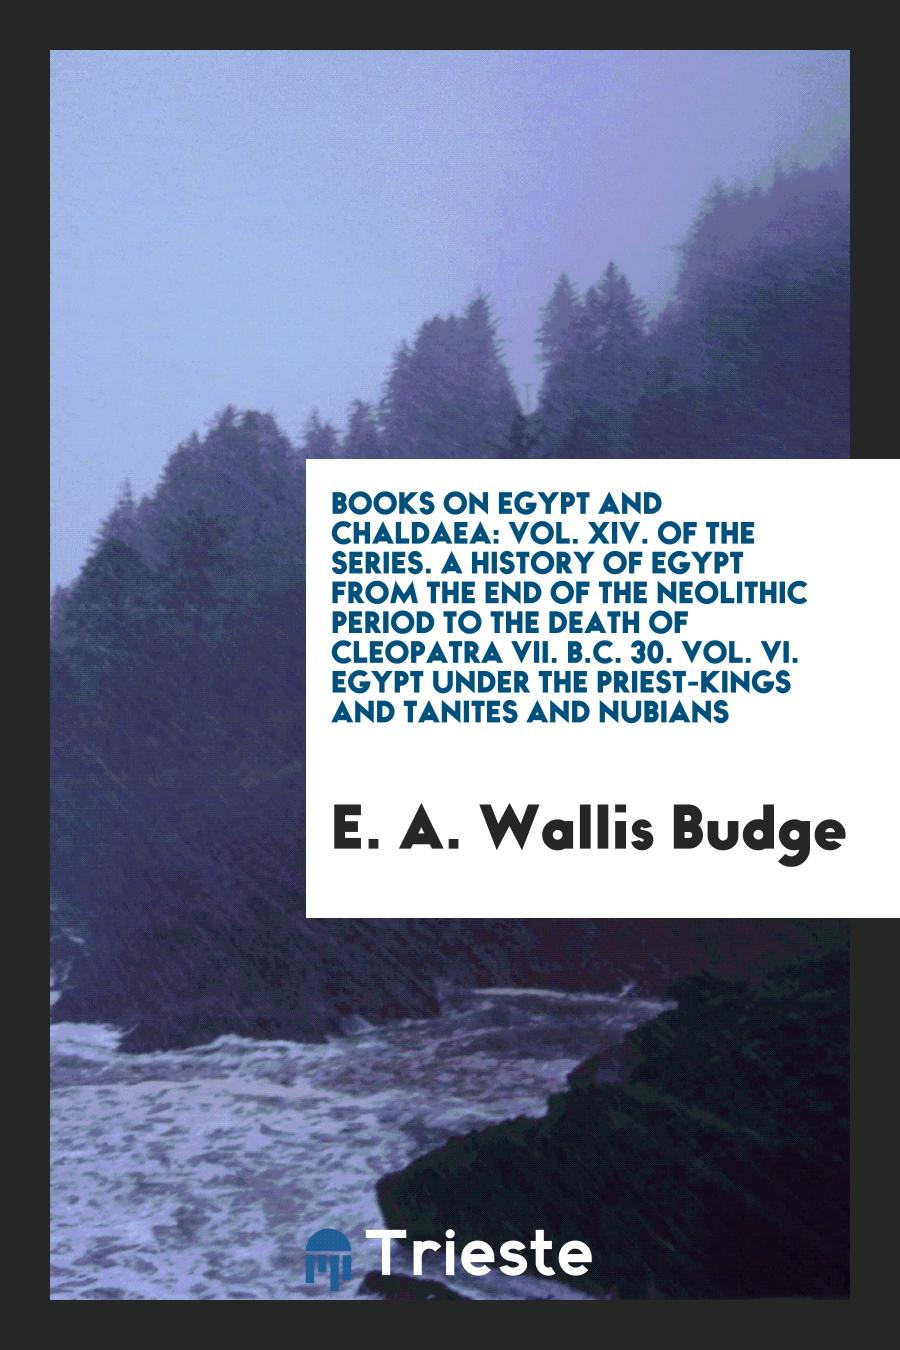 Books on Egypt and Chaldaea: Vol. XIV. Of the Series. A History of Egypt from the End of the Neolithic Period to the Death of Cleopatra VII. b.c. 30. Vol. VI. Egypt under the Priest-Kings and Tanites and Nubians